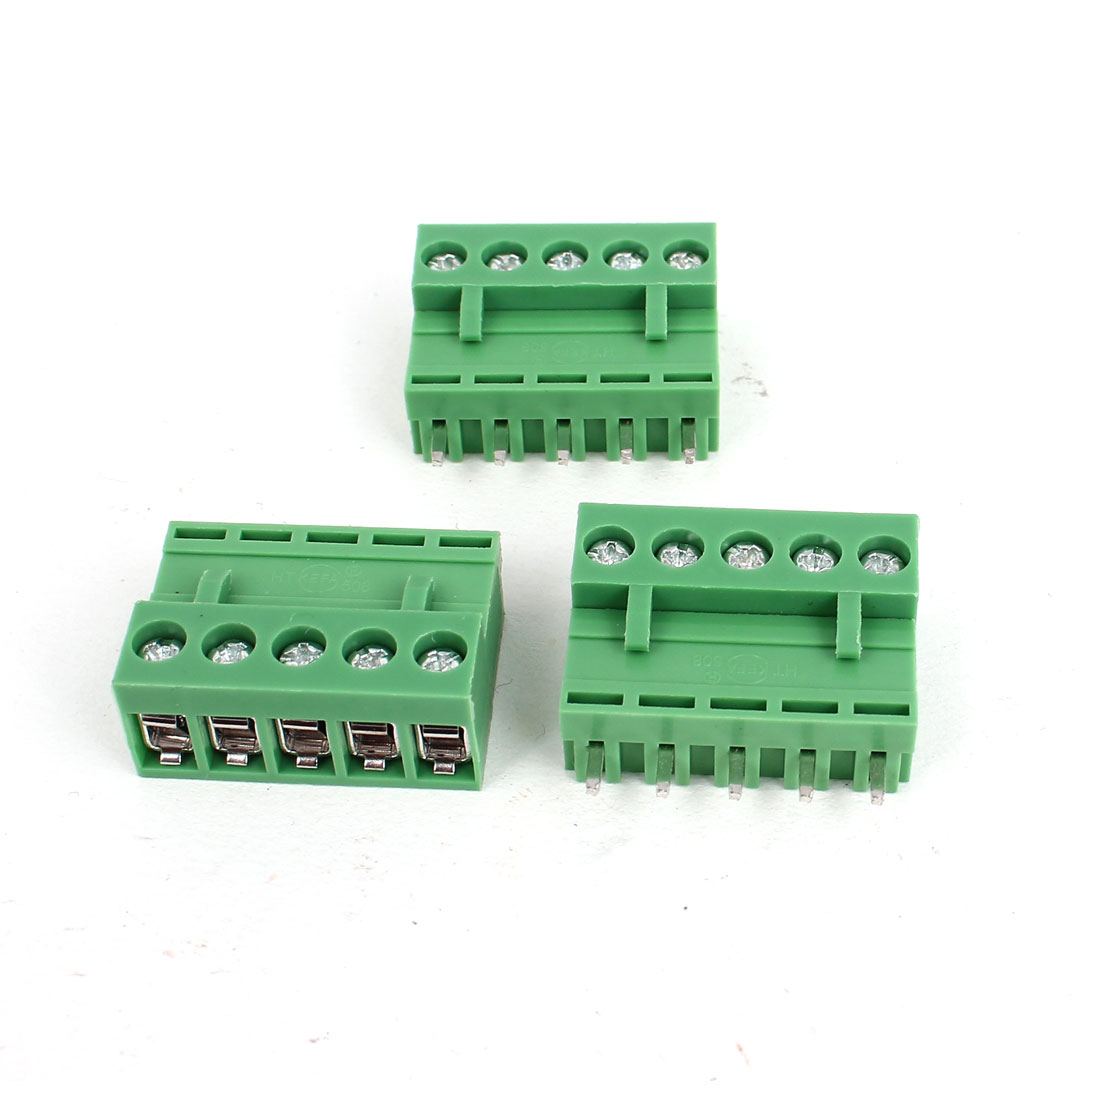 300V 10A 5 Pin Pole 5.08mm Pitch PCB Screw Terminal Block Straight Connector 3pcs Green